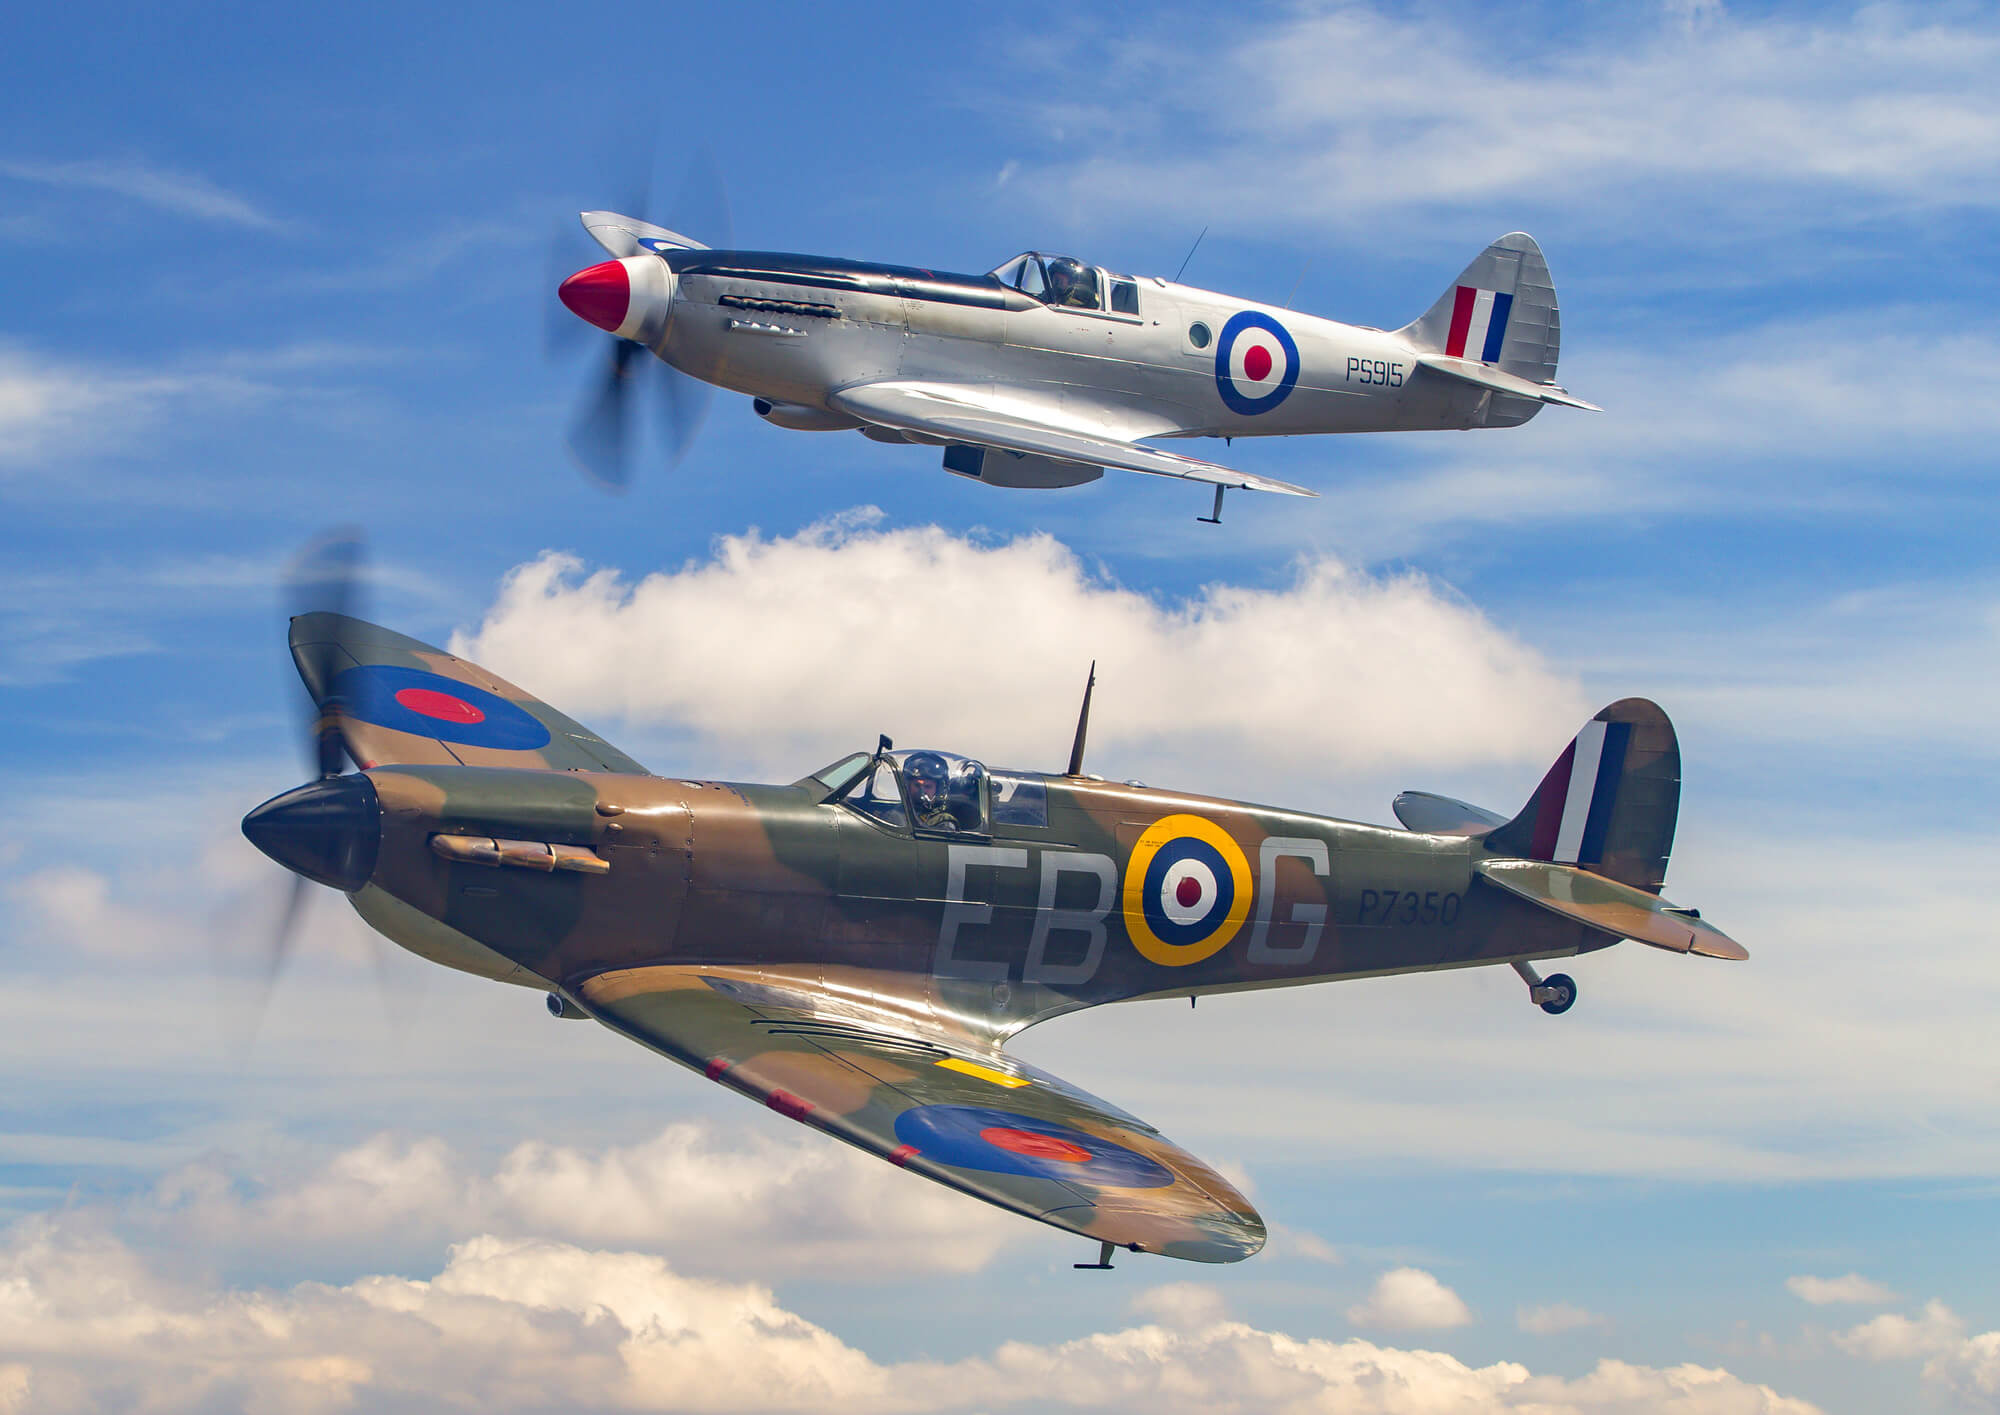 Supermarine Spitfire Pair In Clouds Wall Mural Wallsauce AU